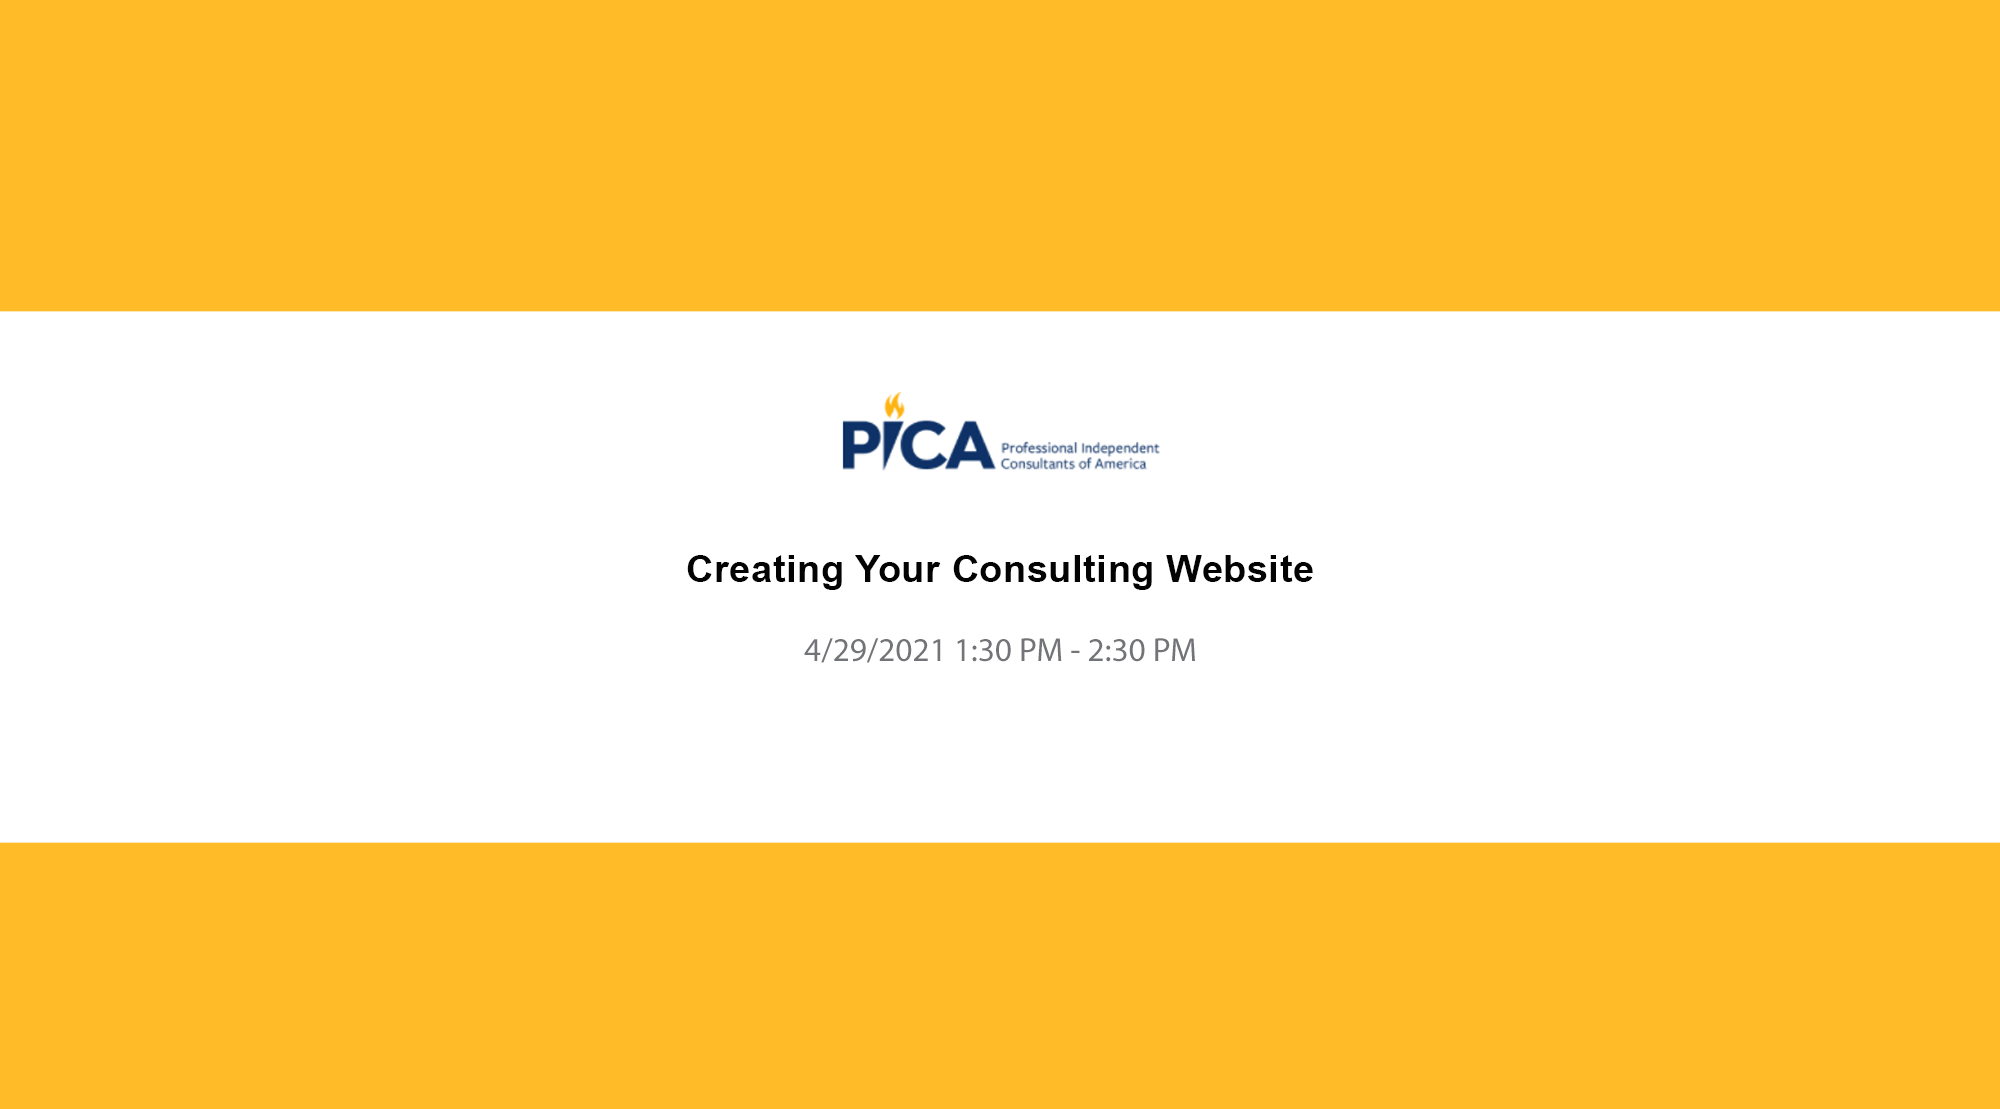 Creating Your Consulting Website